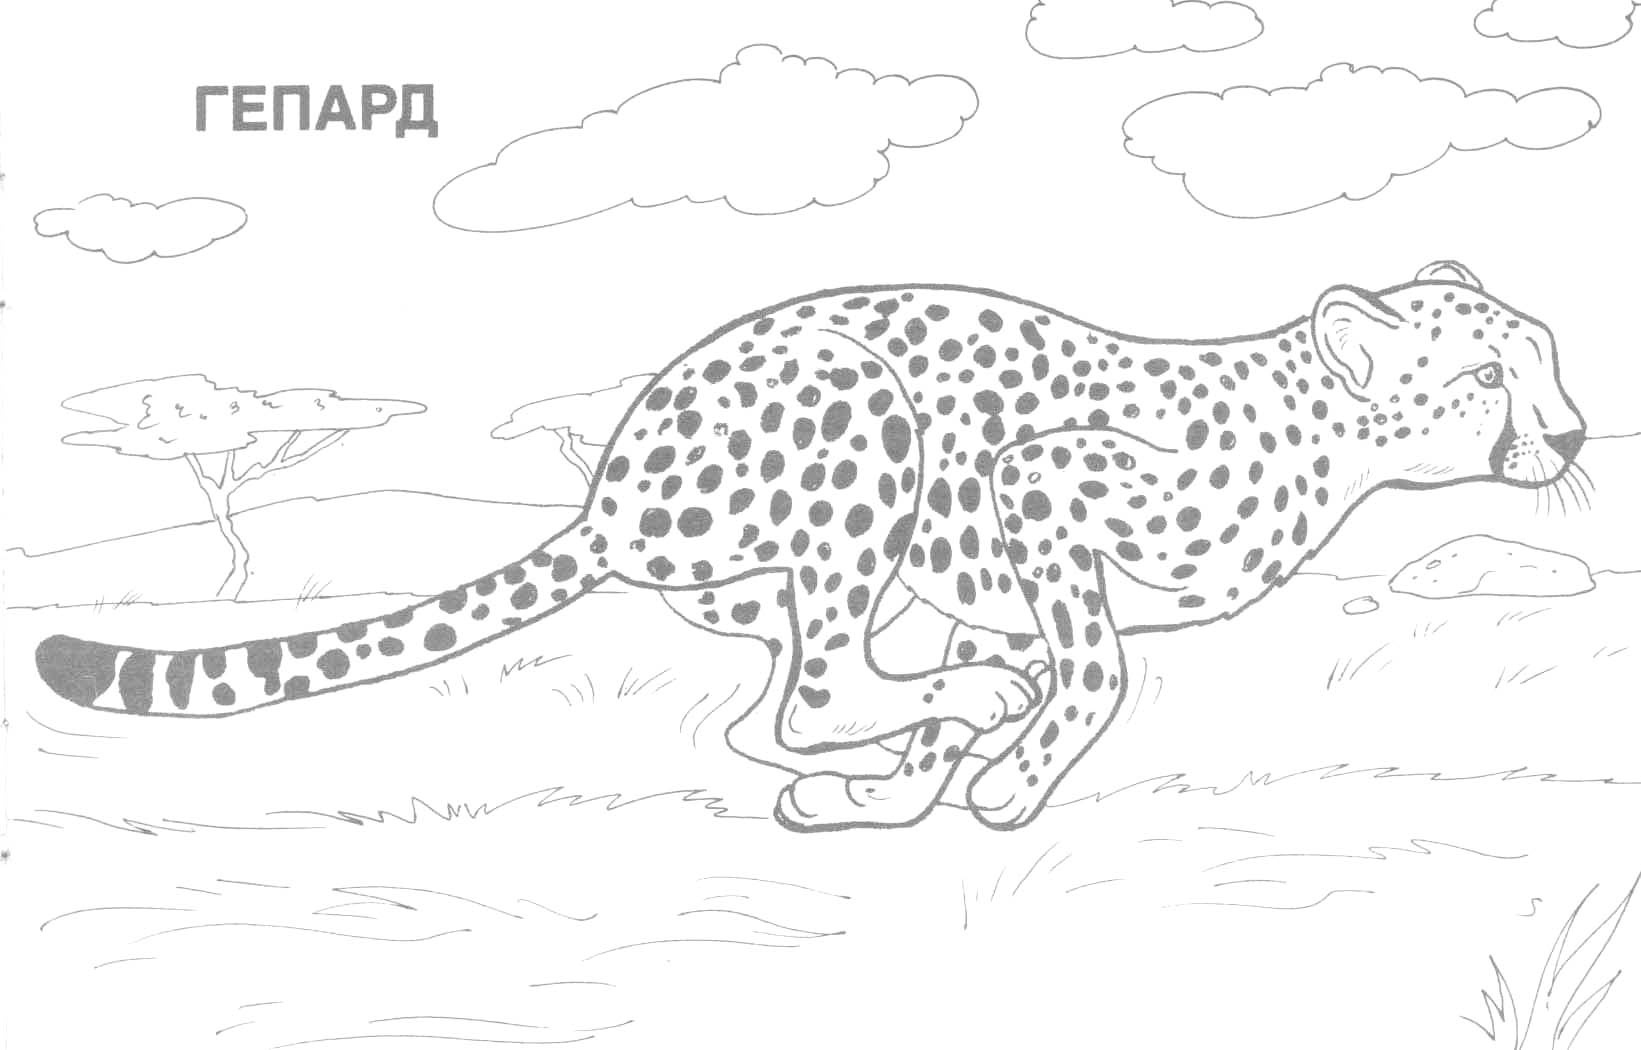 Coloring Ideas : Wild Animal Coloring Sheets Image Inspirations - Free Printable Wild Animal Coloring Pages